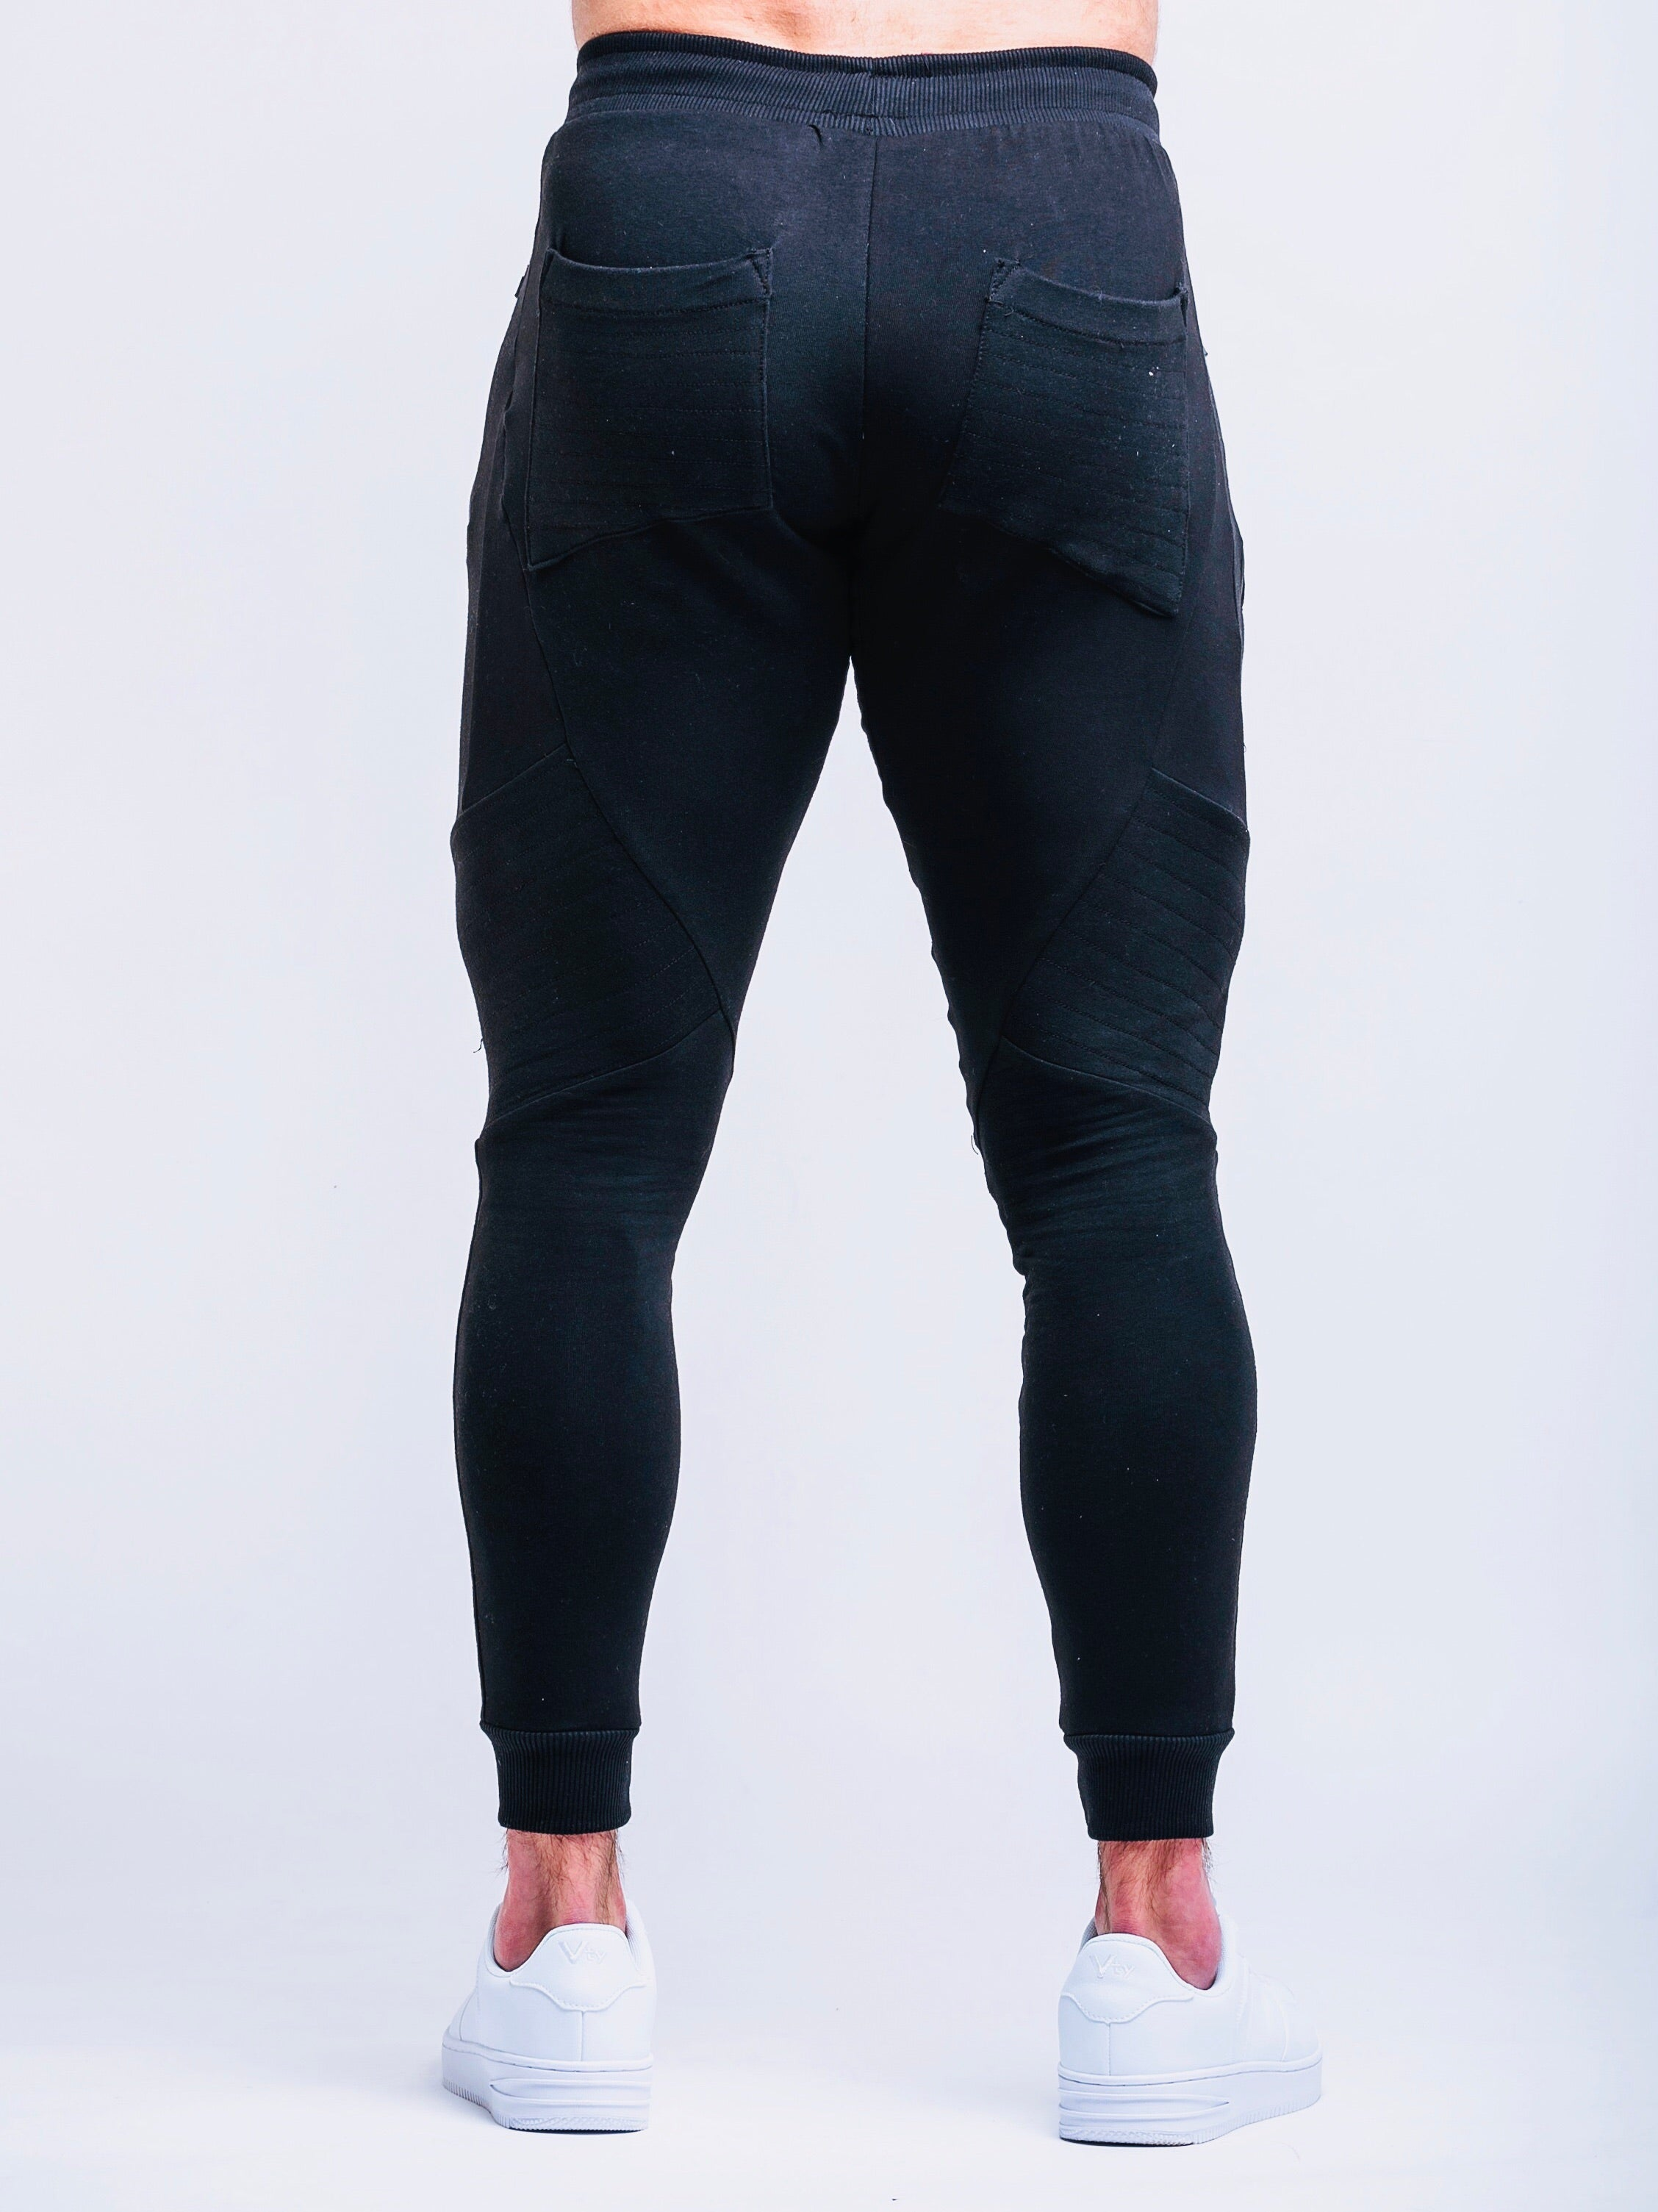 Panel Bottoms Black